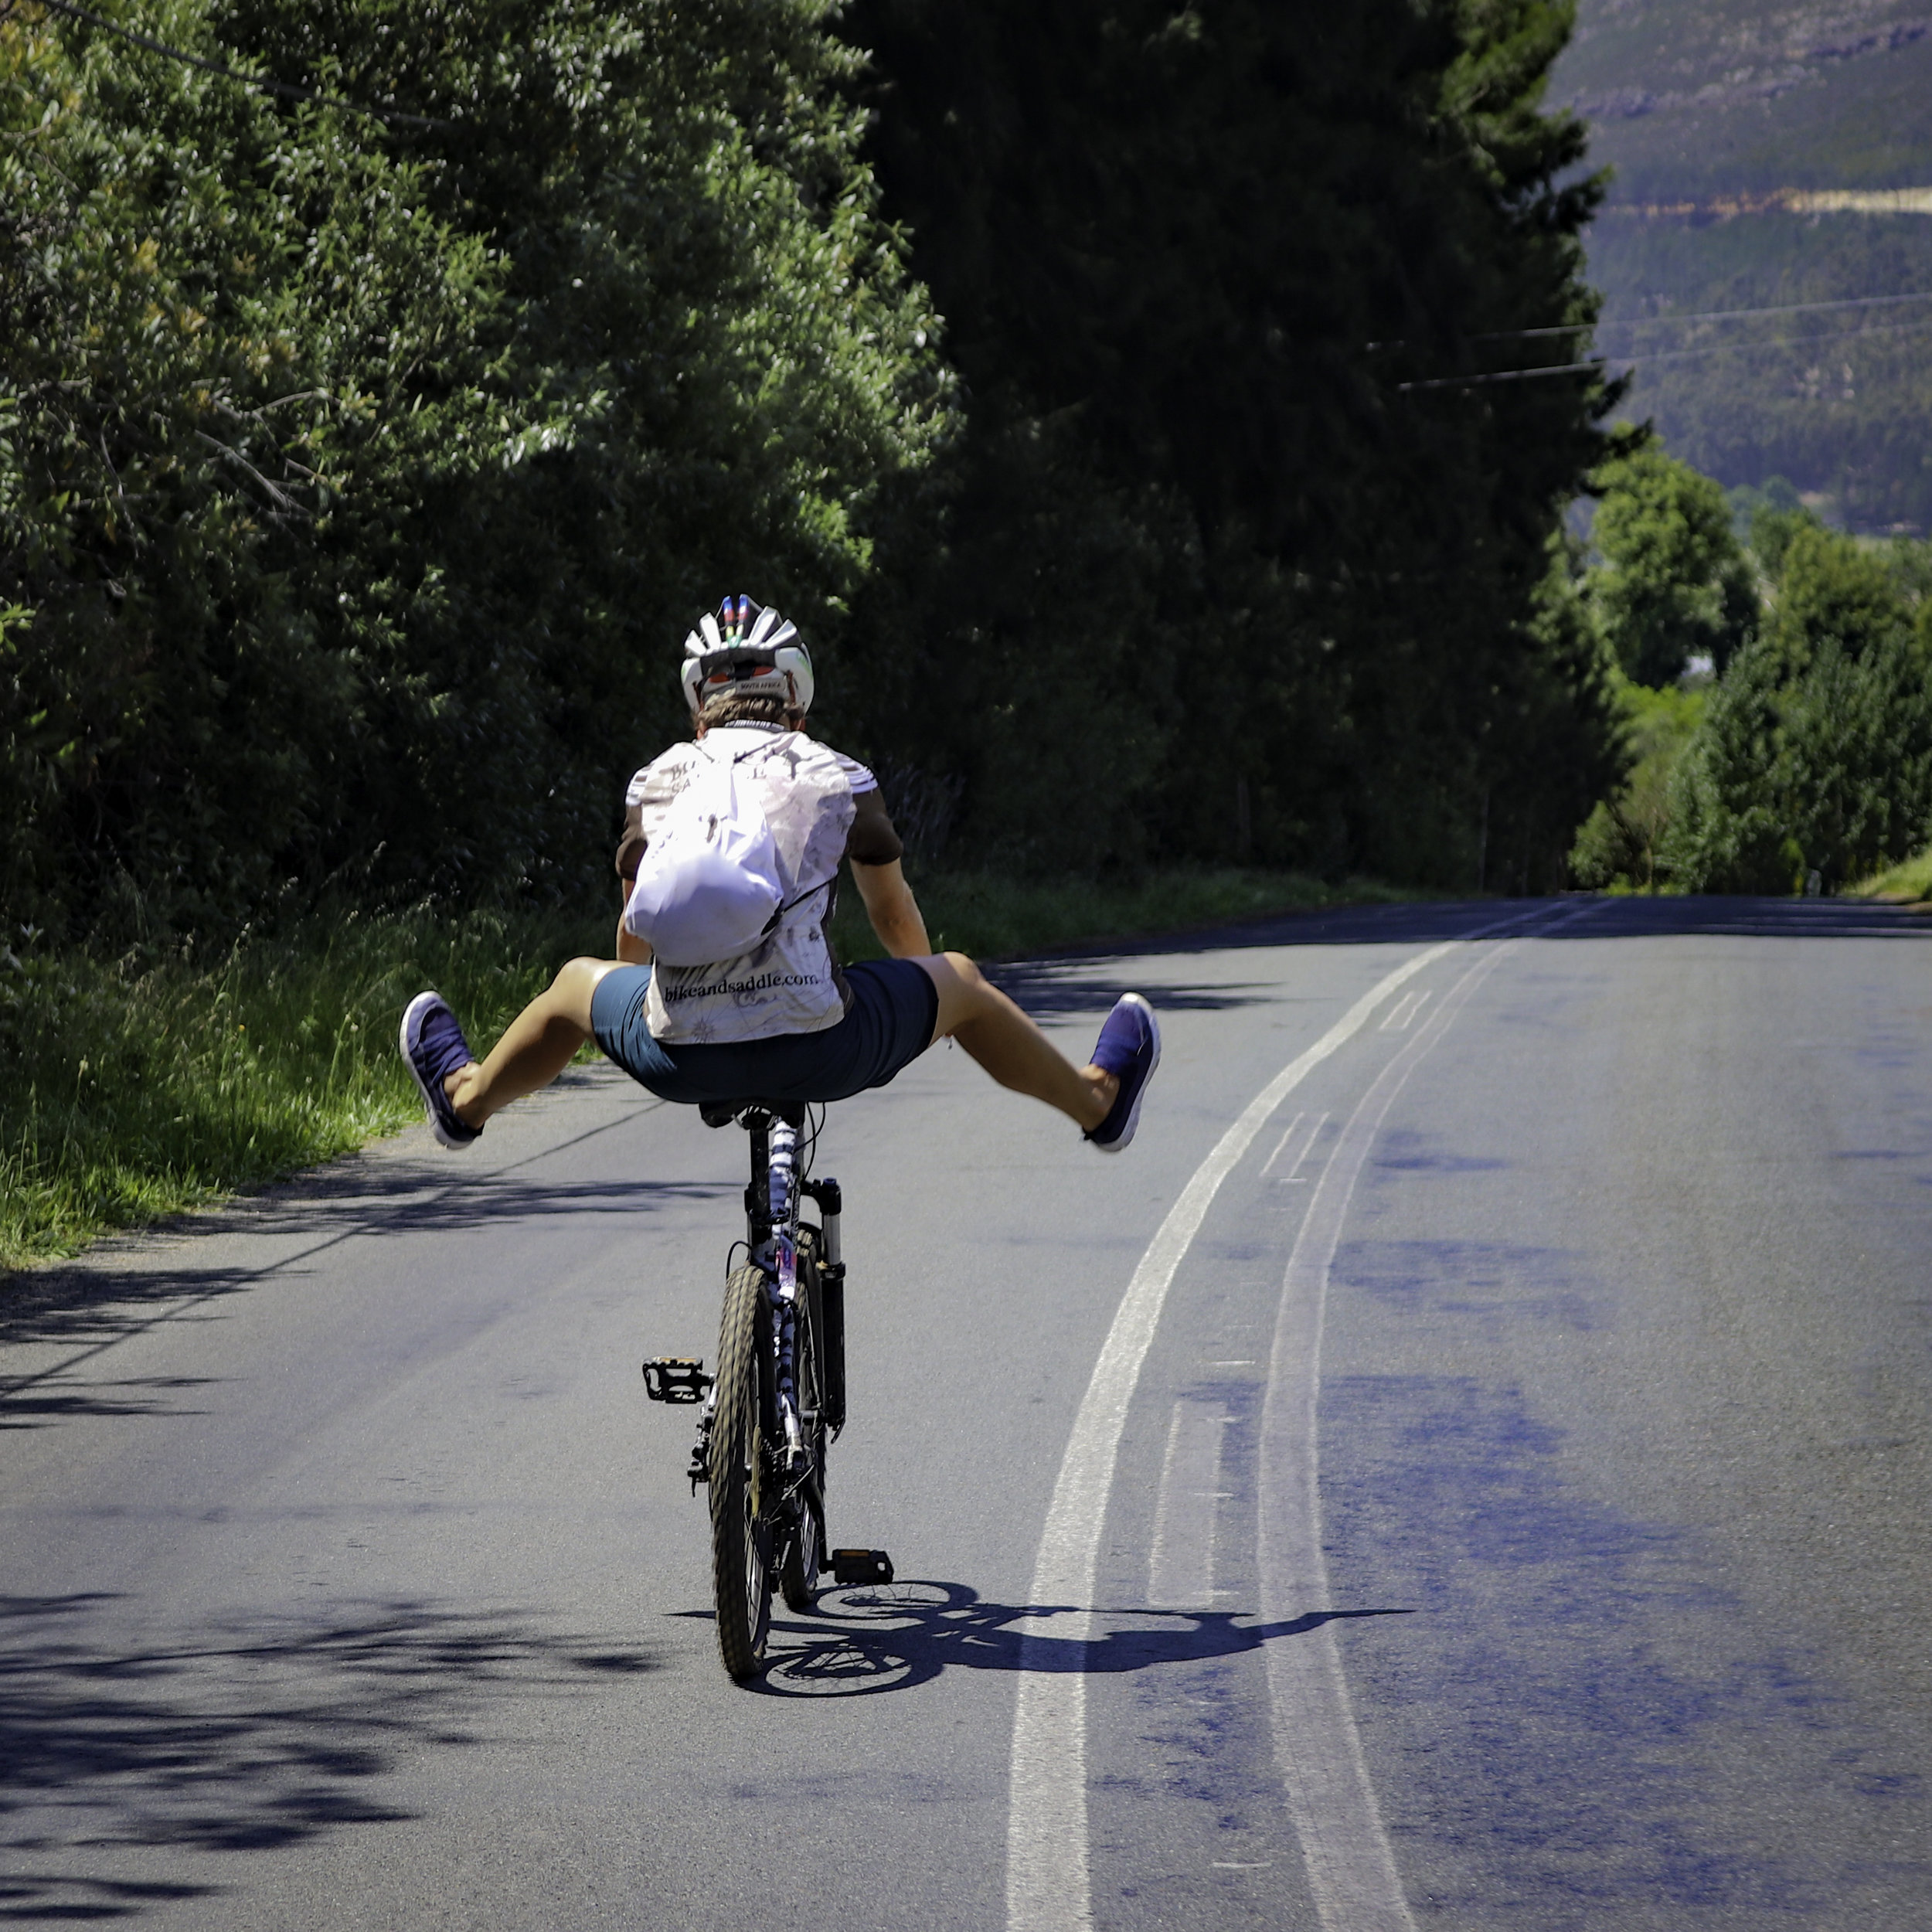 Fun and games! Reproducing the Bike & Saddle logo… in Franschhoek.